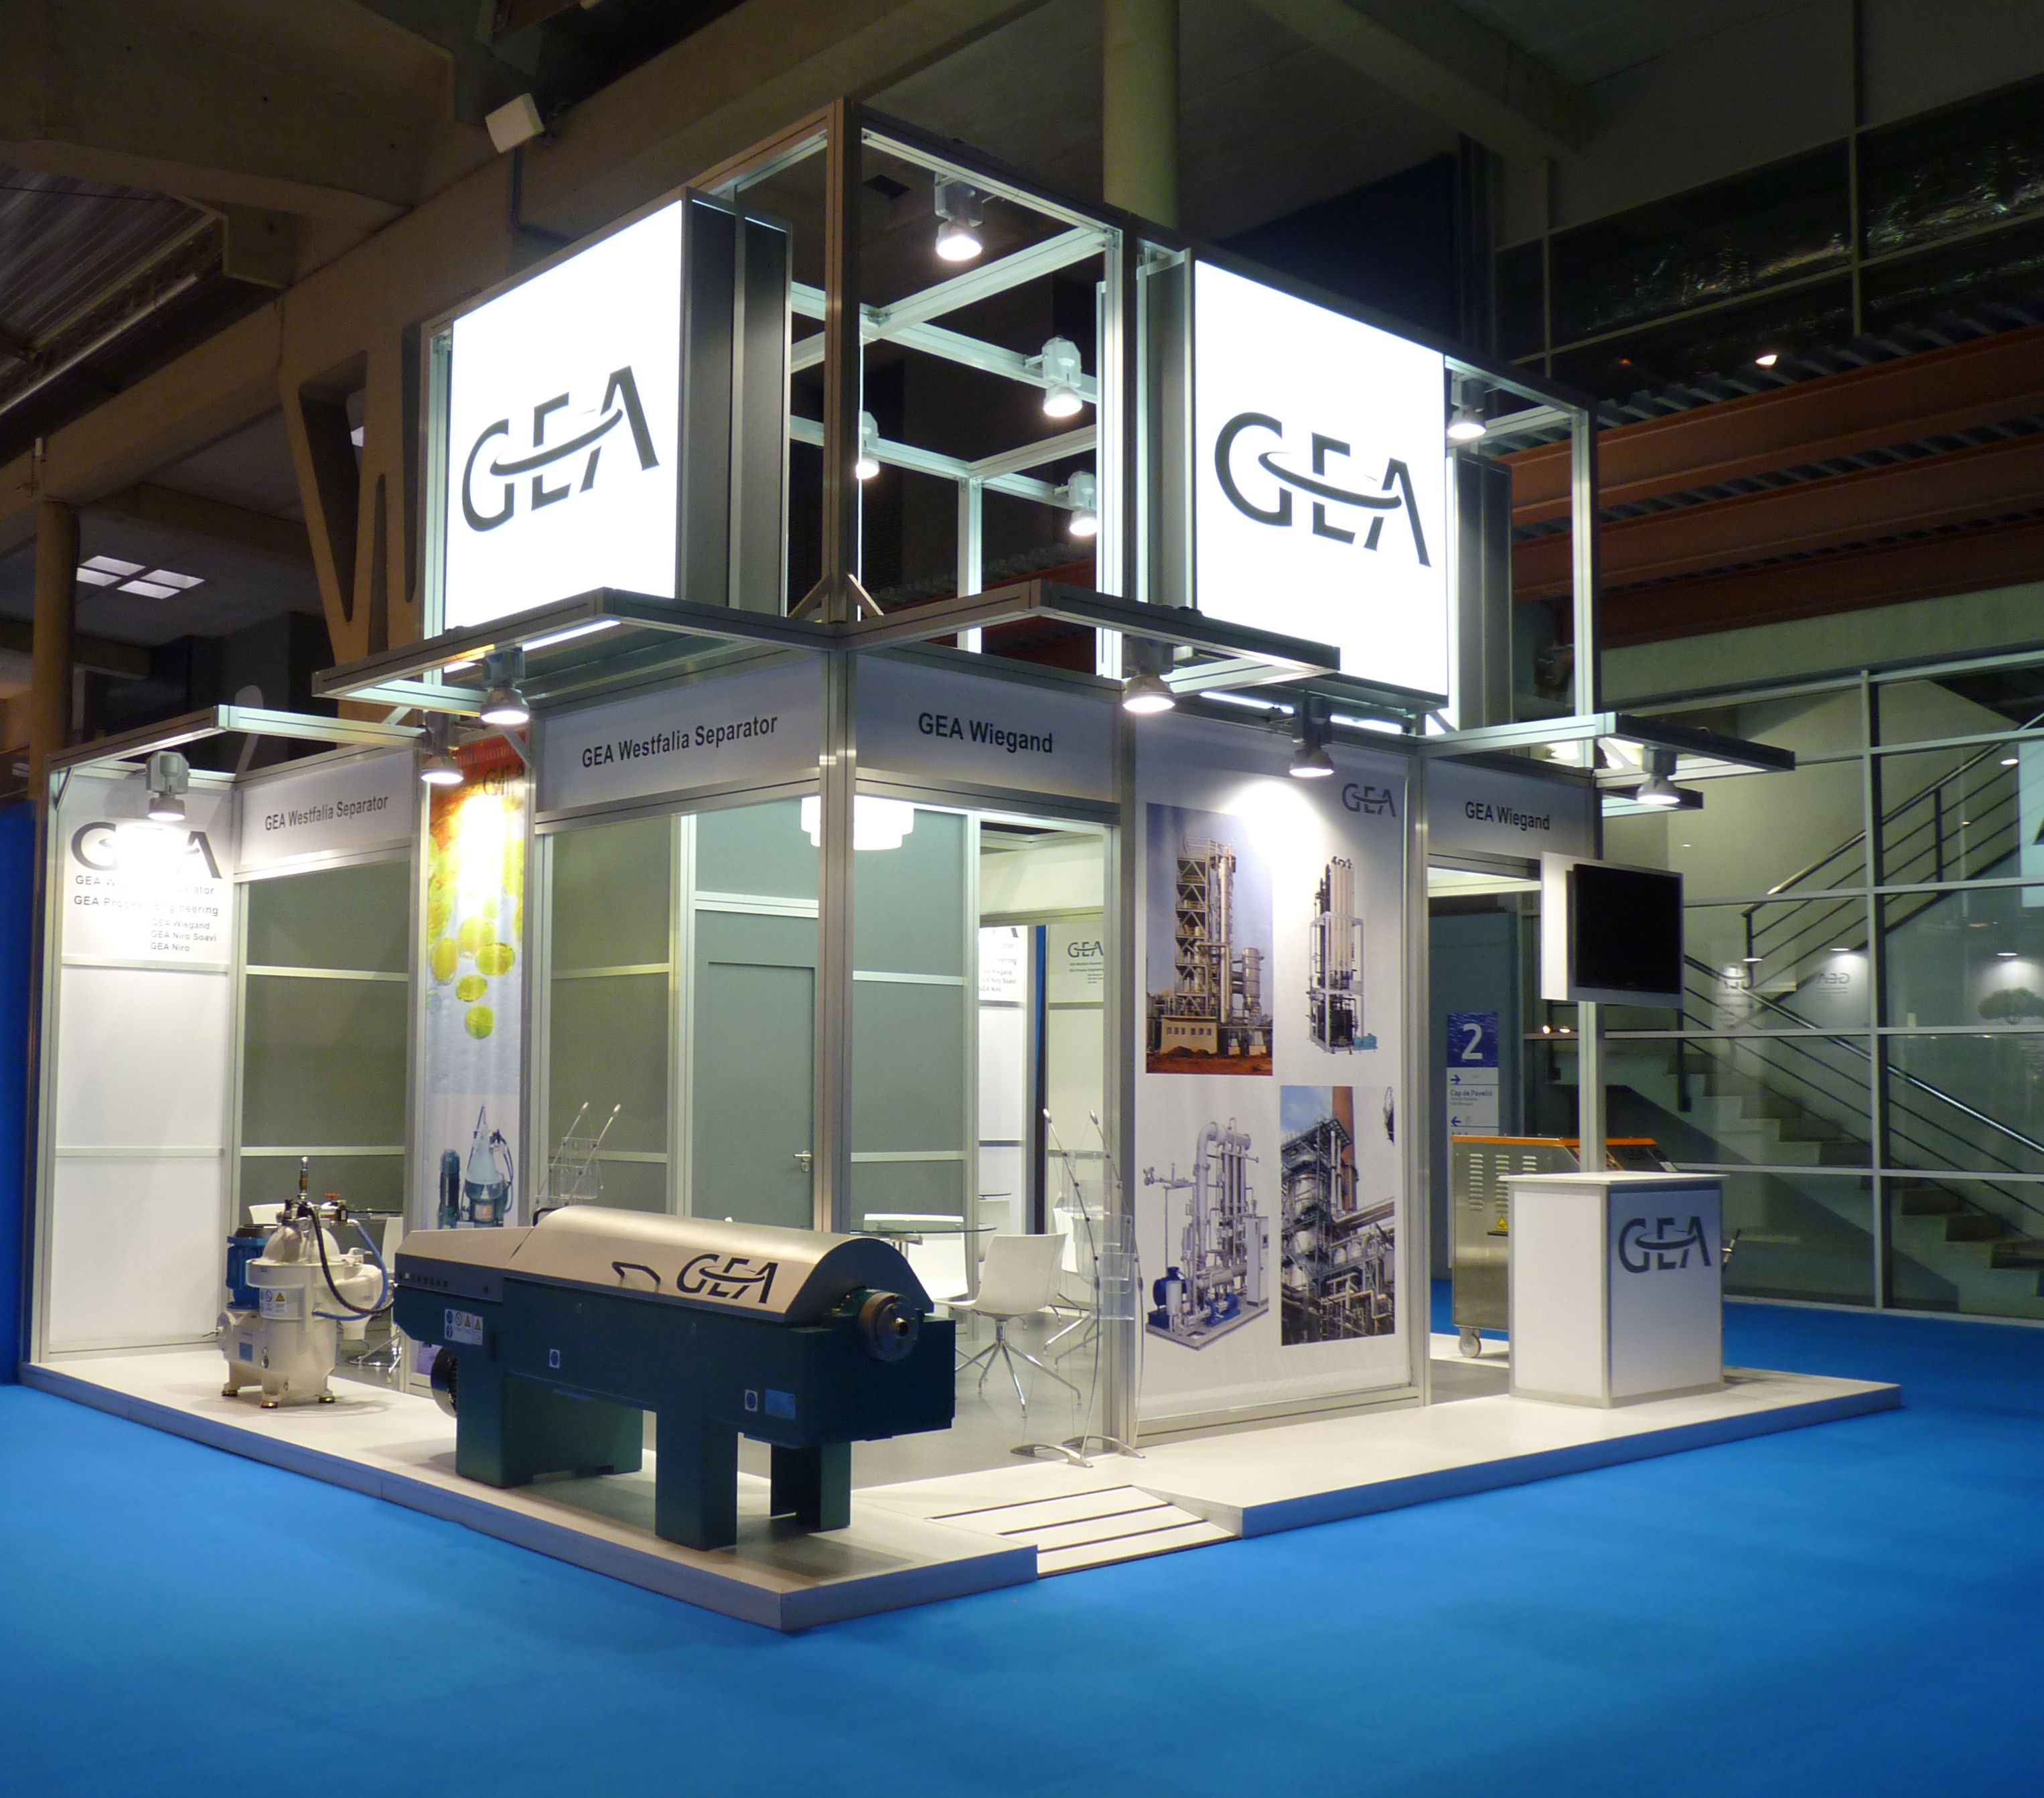 The GEA put back in the hands of JUAN FUENTES STAND the design and production of its stand in EXPOQUIMIA 2014.   The stand has been built with modular structure type Maxima aimed at improving the comfort of the four companies represented and visibility with three very large illuminated signs and where the real protagonist is the product exposed both physically and graphically by advertising claims.